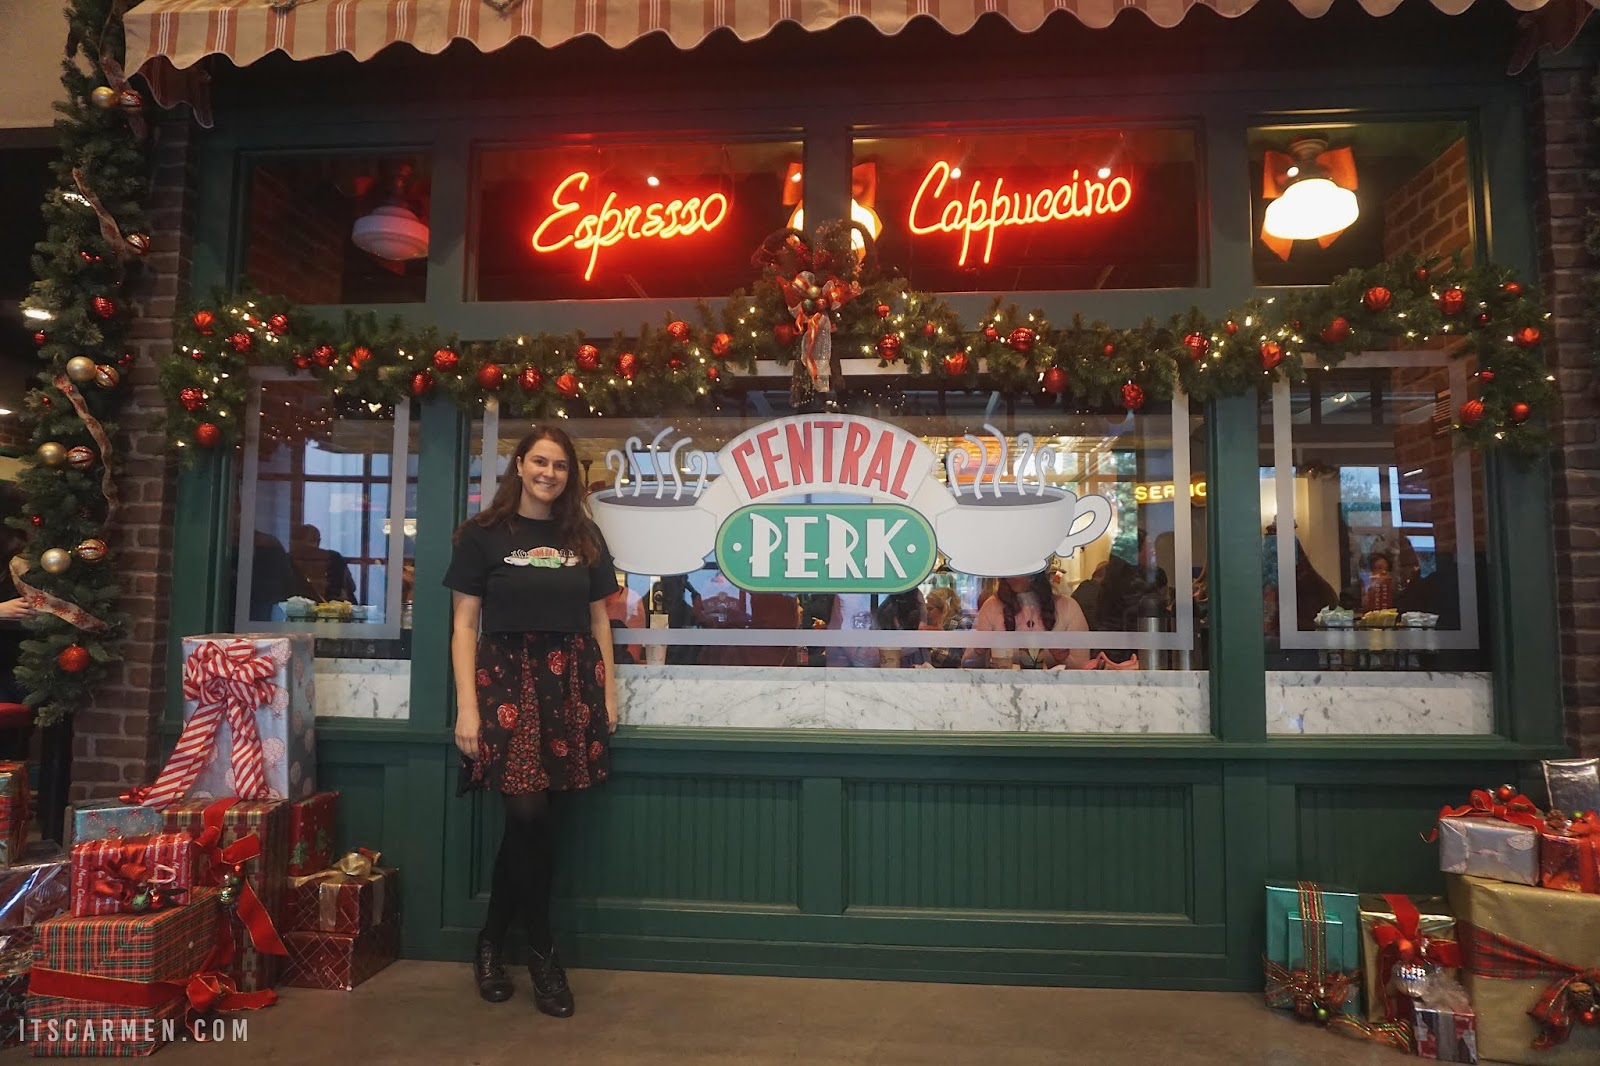 Where Was Friends Filmed Central Perk Cafe From Friends Warner Bros Studio Tour Carmen Varner Travel Influencer Blogging Coach Social Media Consultant